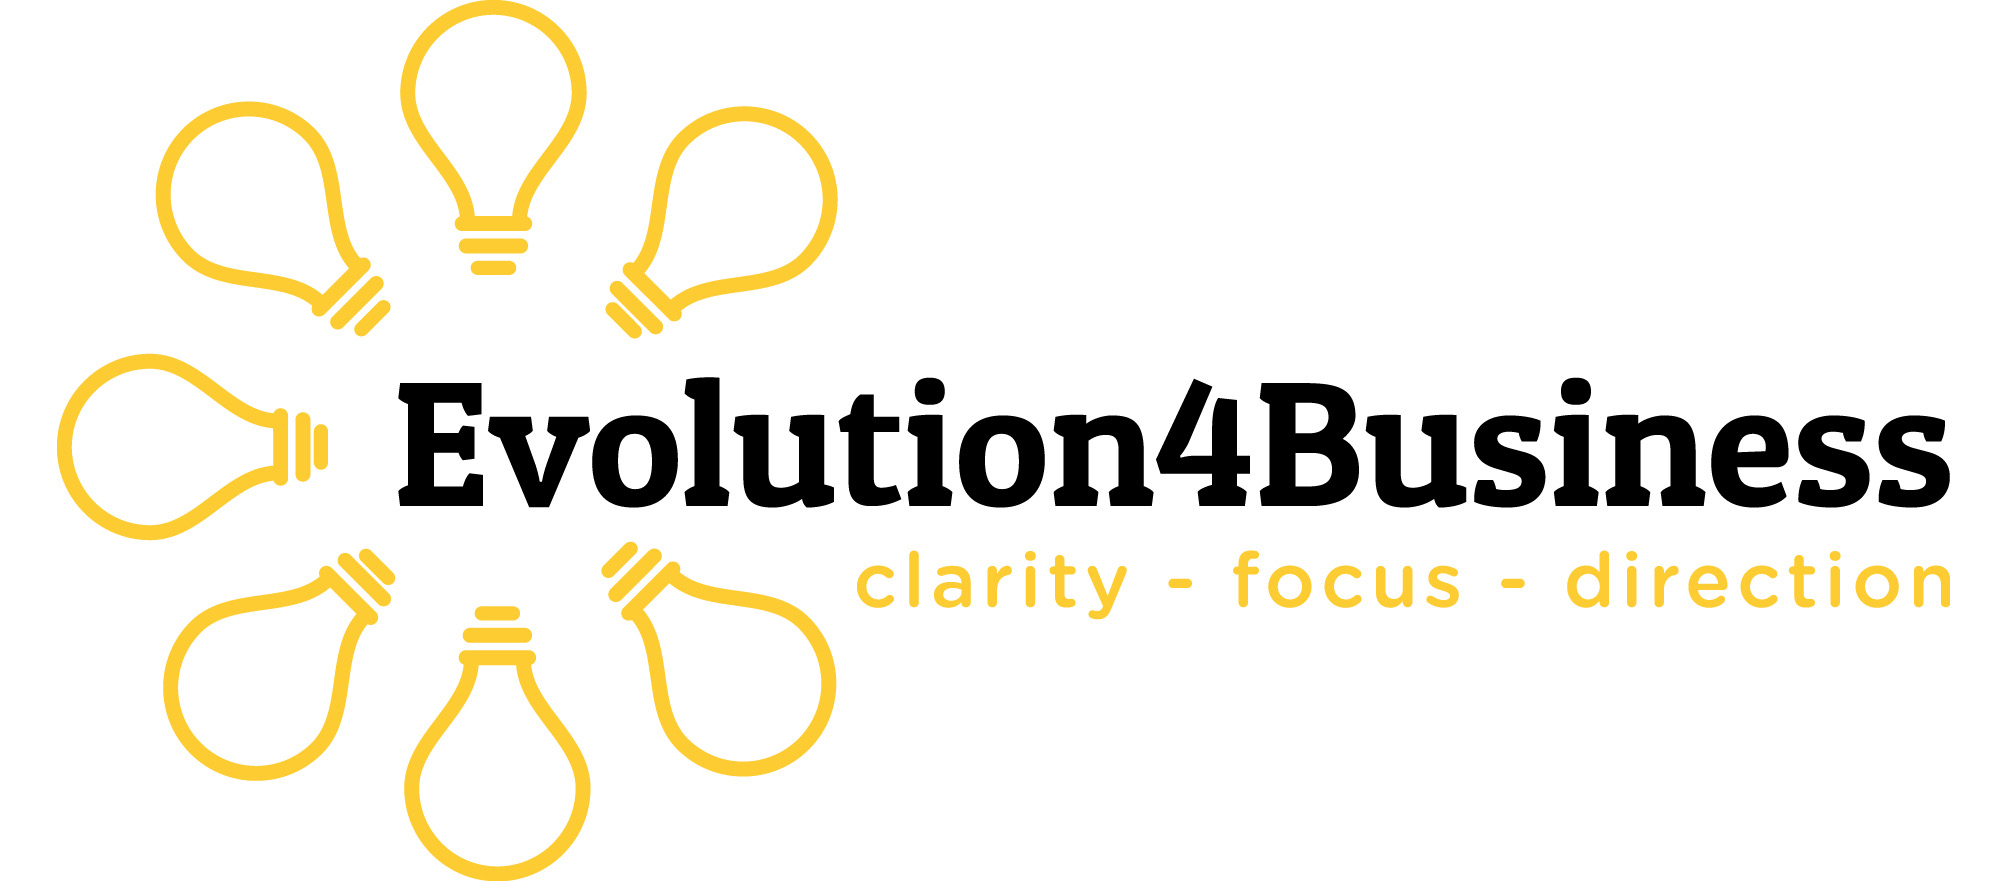 Evolution 4 Business